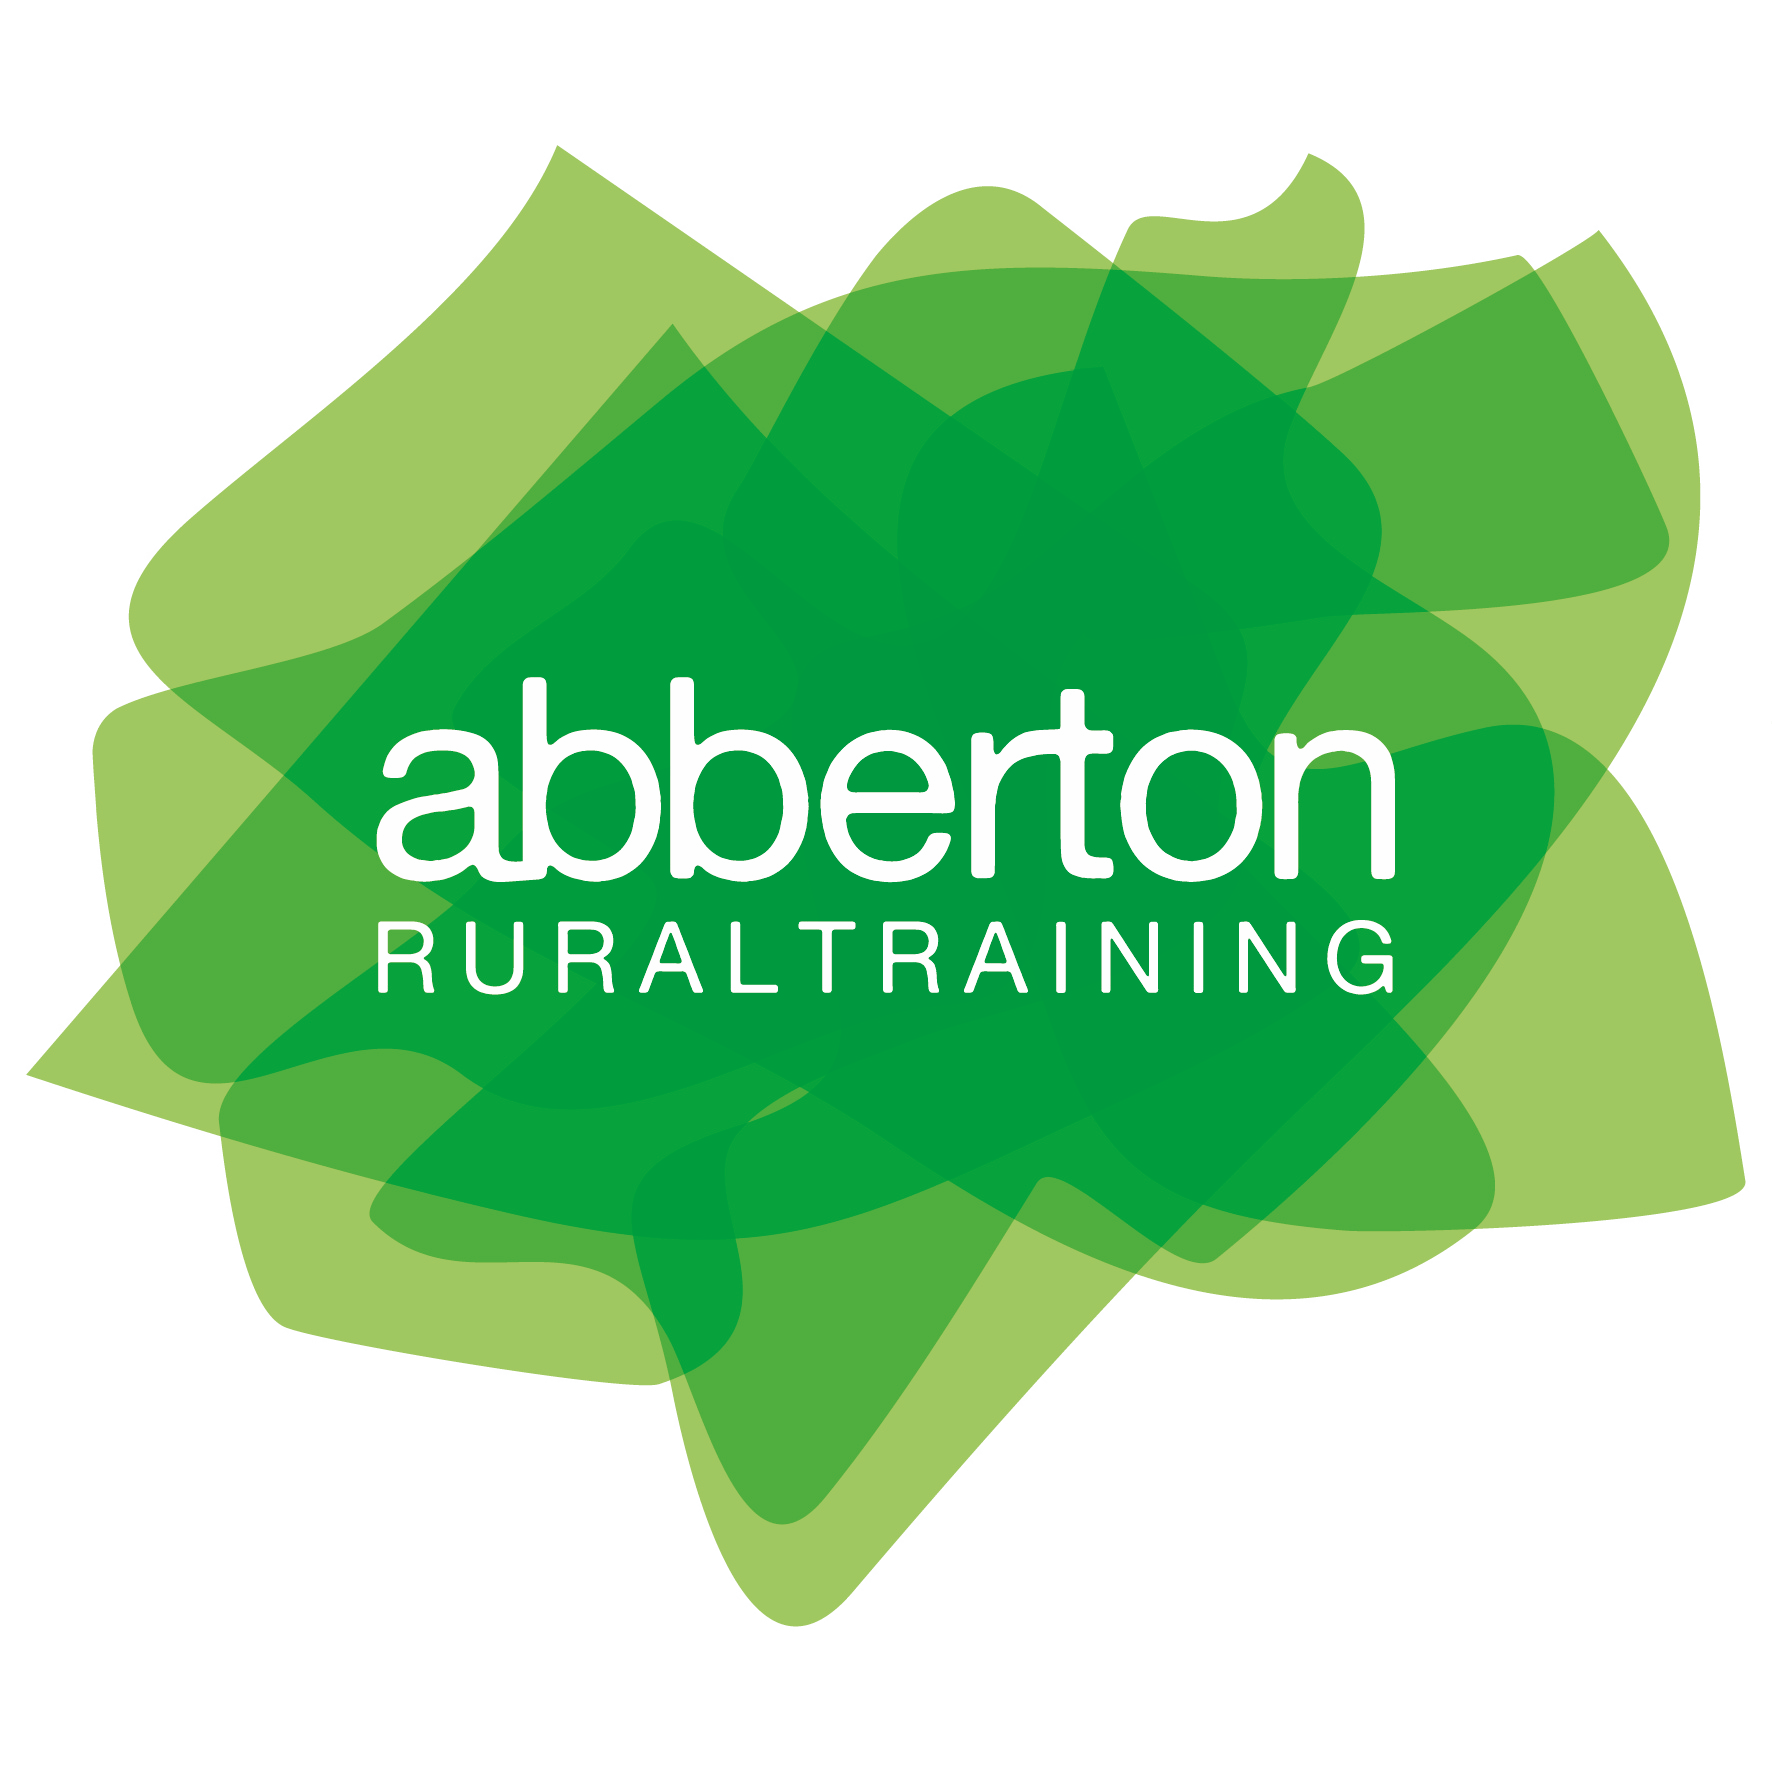 abberton-rural-training